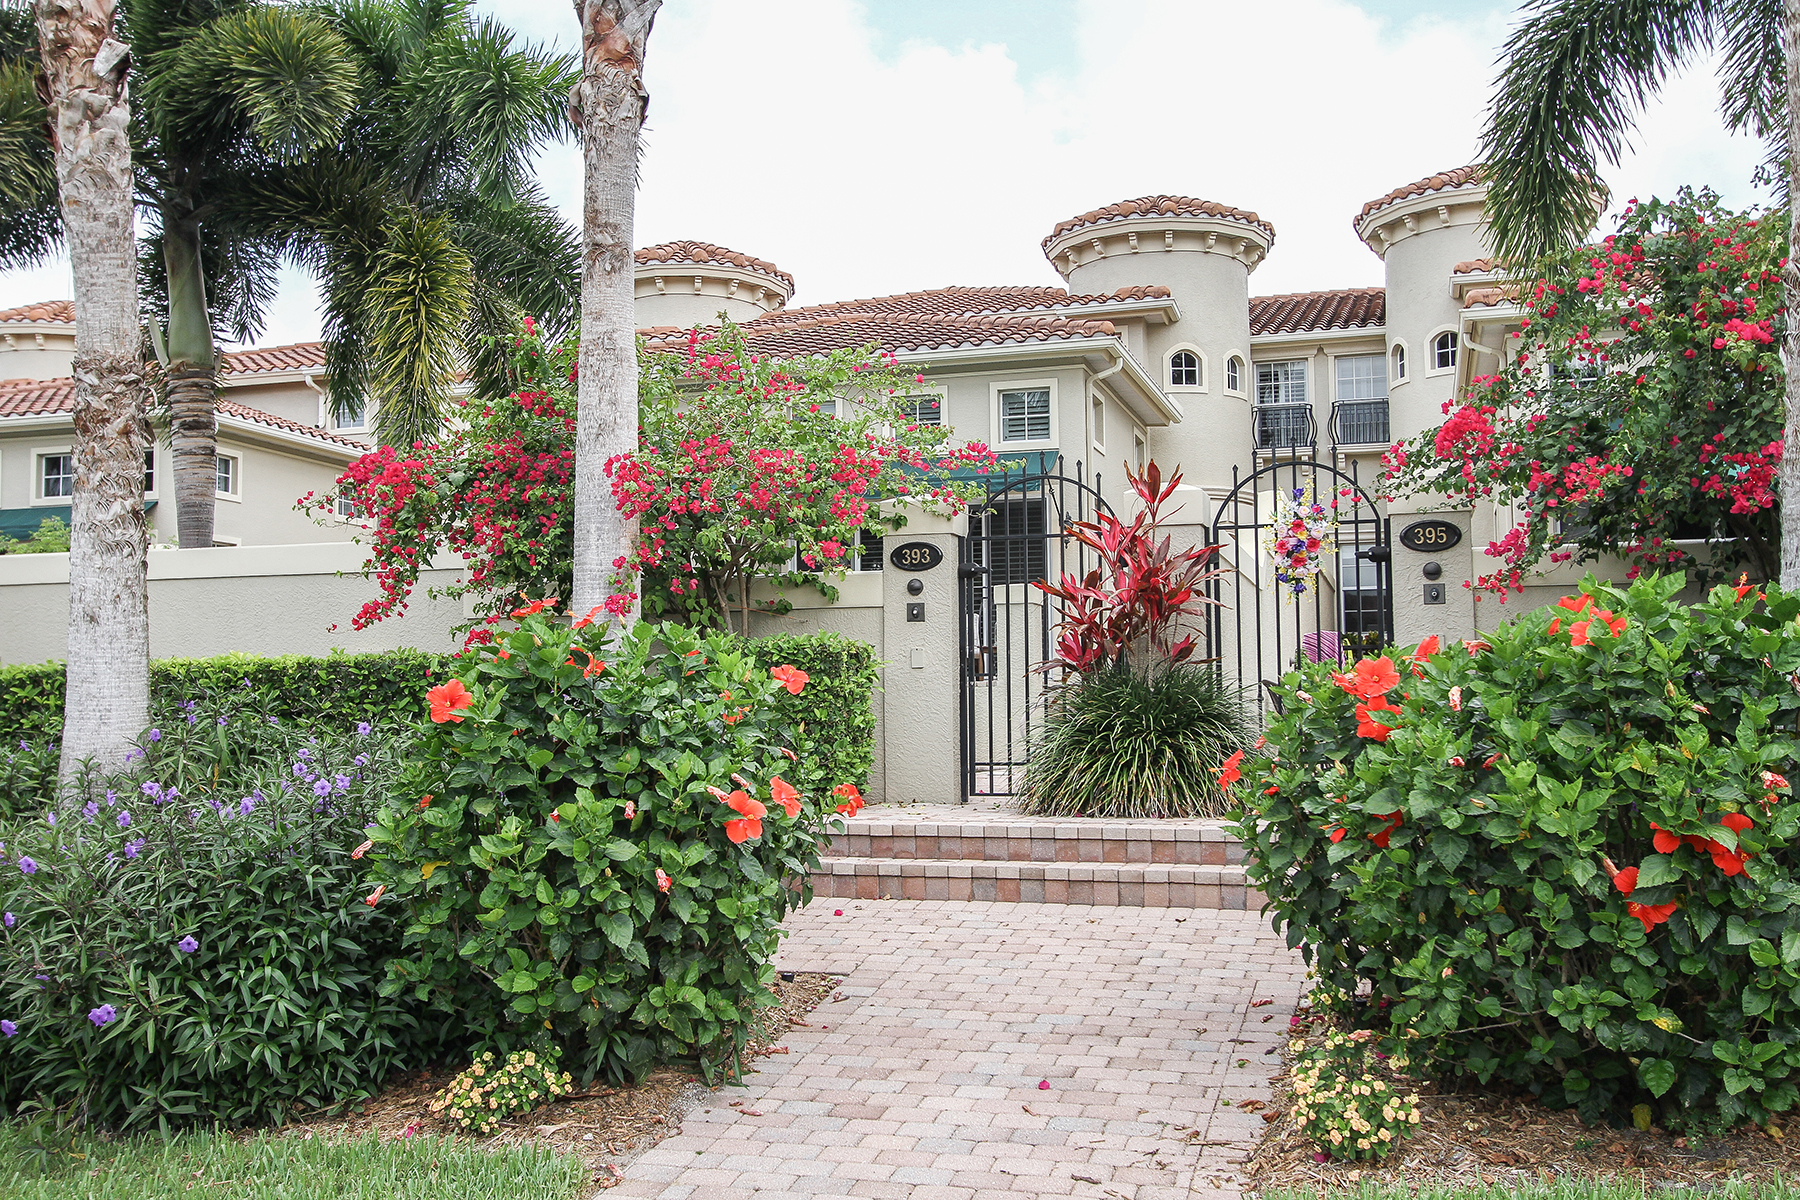 Townhouse for Rent at 393 2nd Ave S, Naples, FL 34102 393 2nd Ave S 5, Naples, Florida 34102 United States